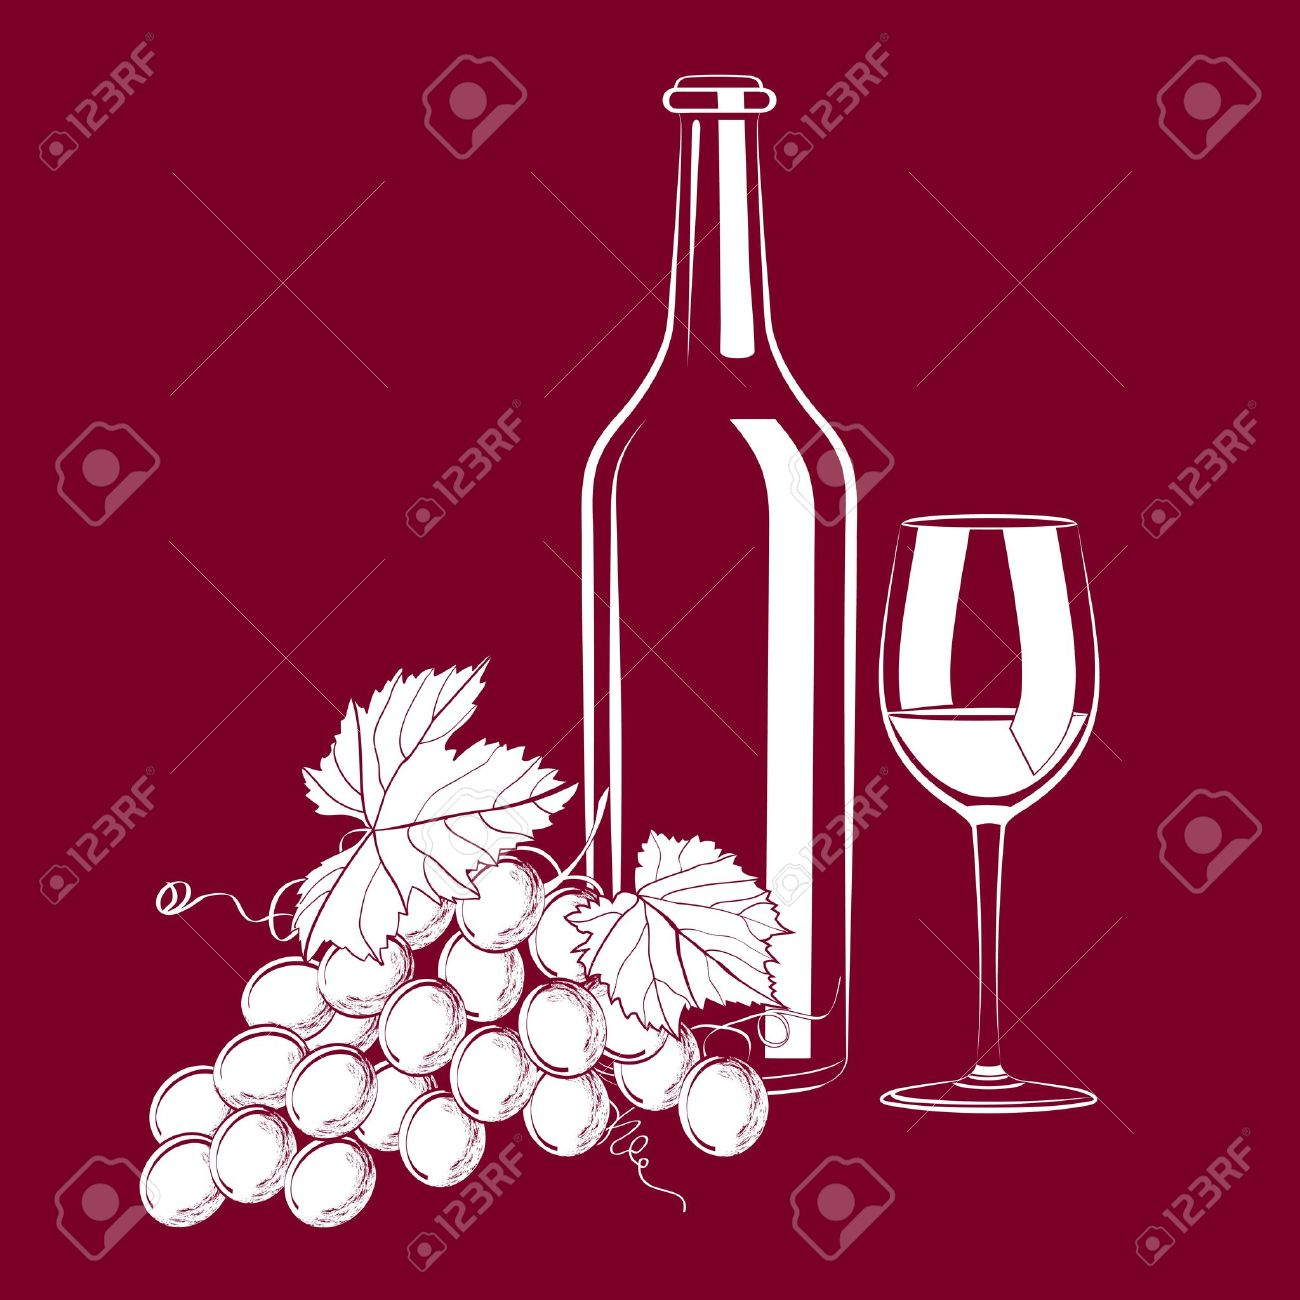 illustration of vintage still life with a glass, a bottle of wine and grapes Stock Vector - 14073882